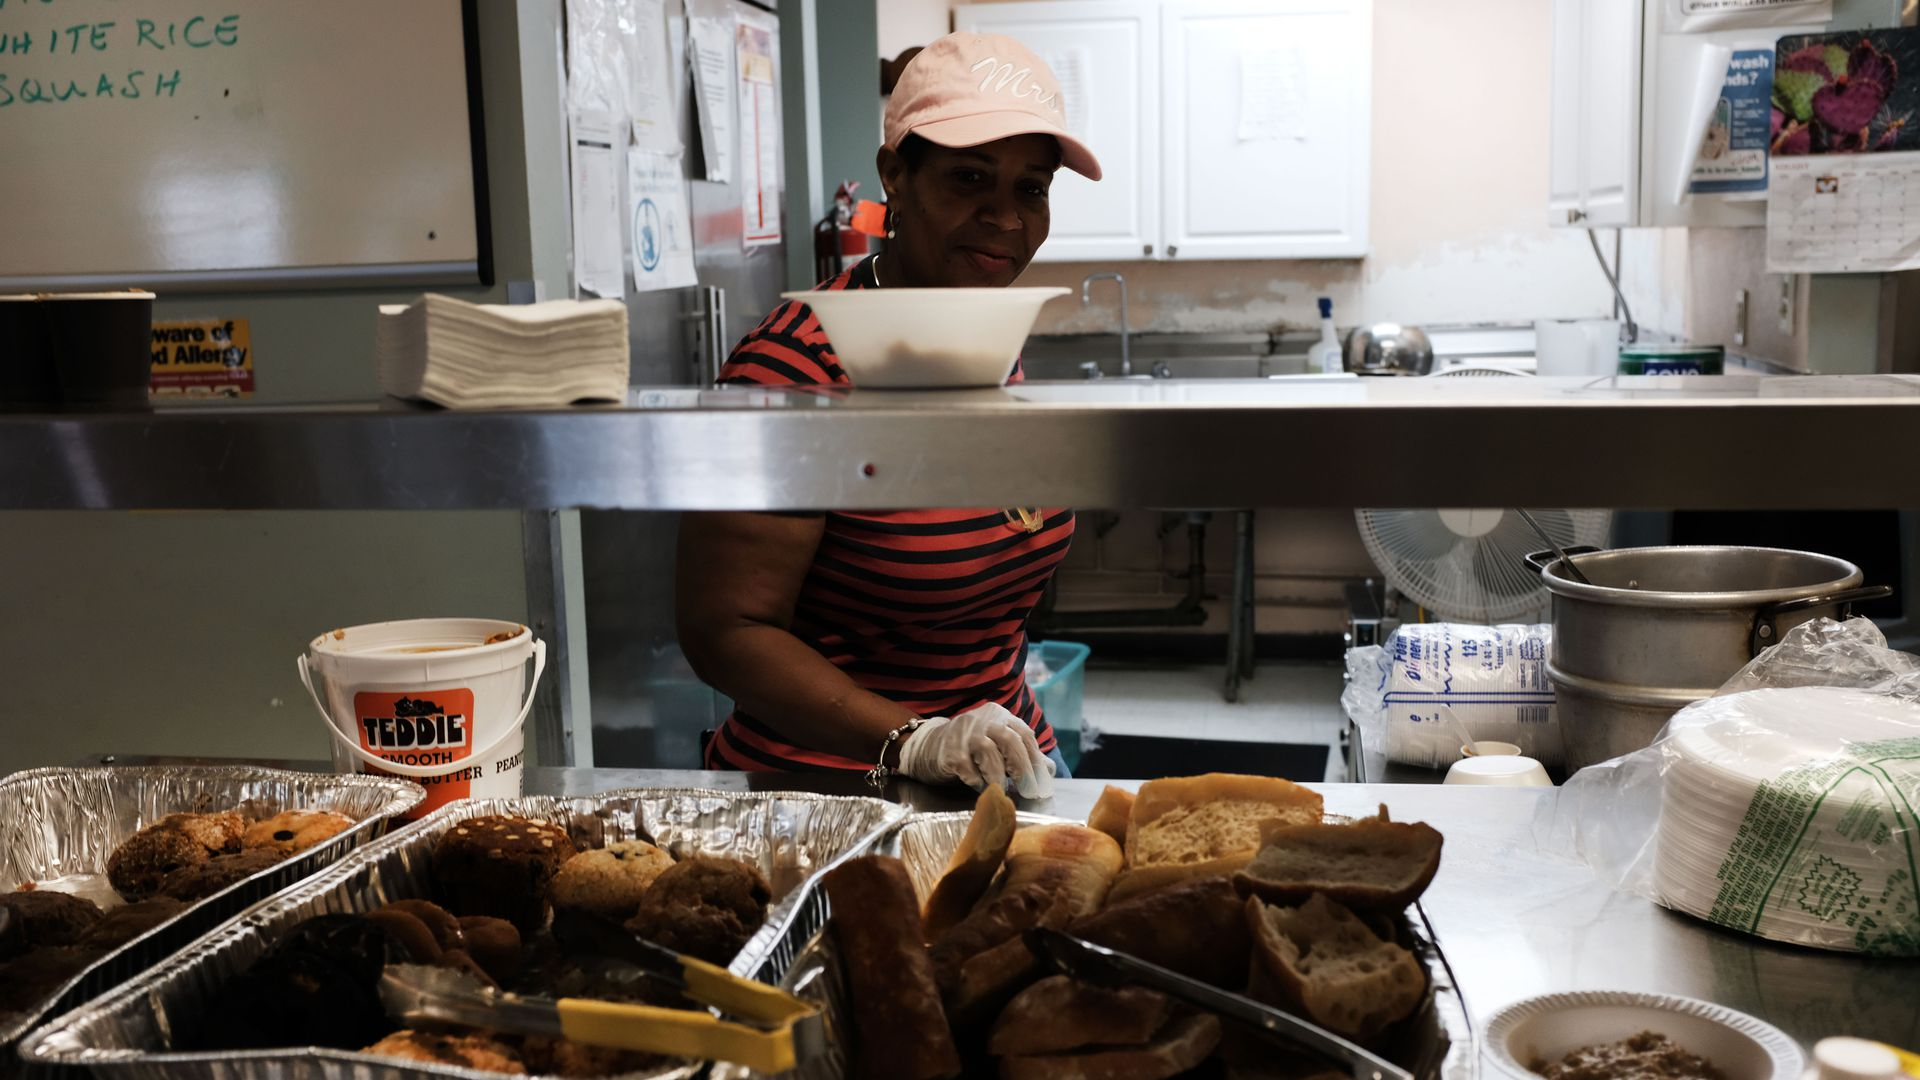 Breakfast is served at the Lazarus House Ministries morning soup kitchen on August 16